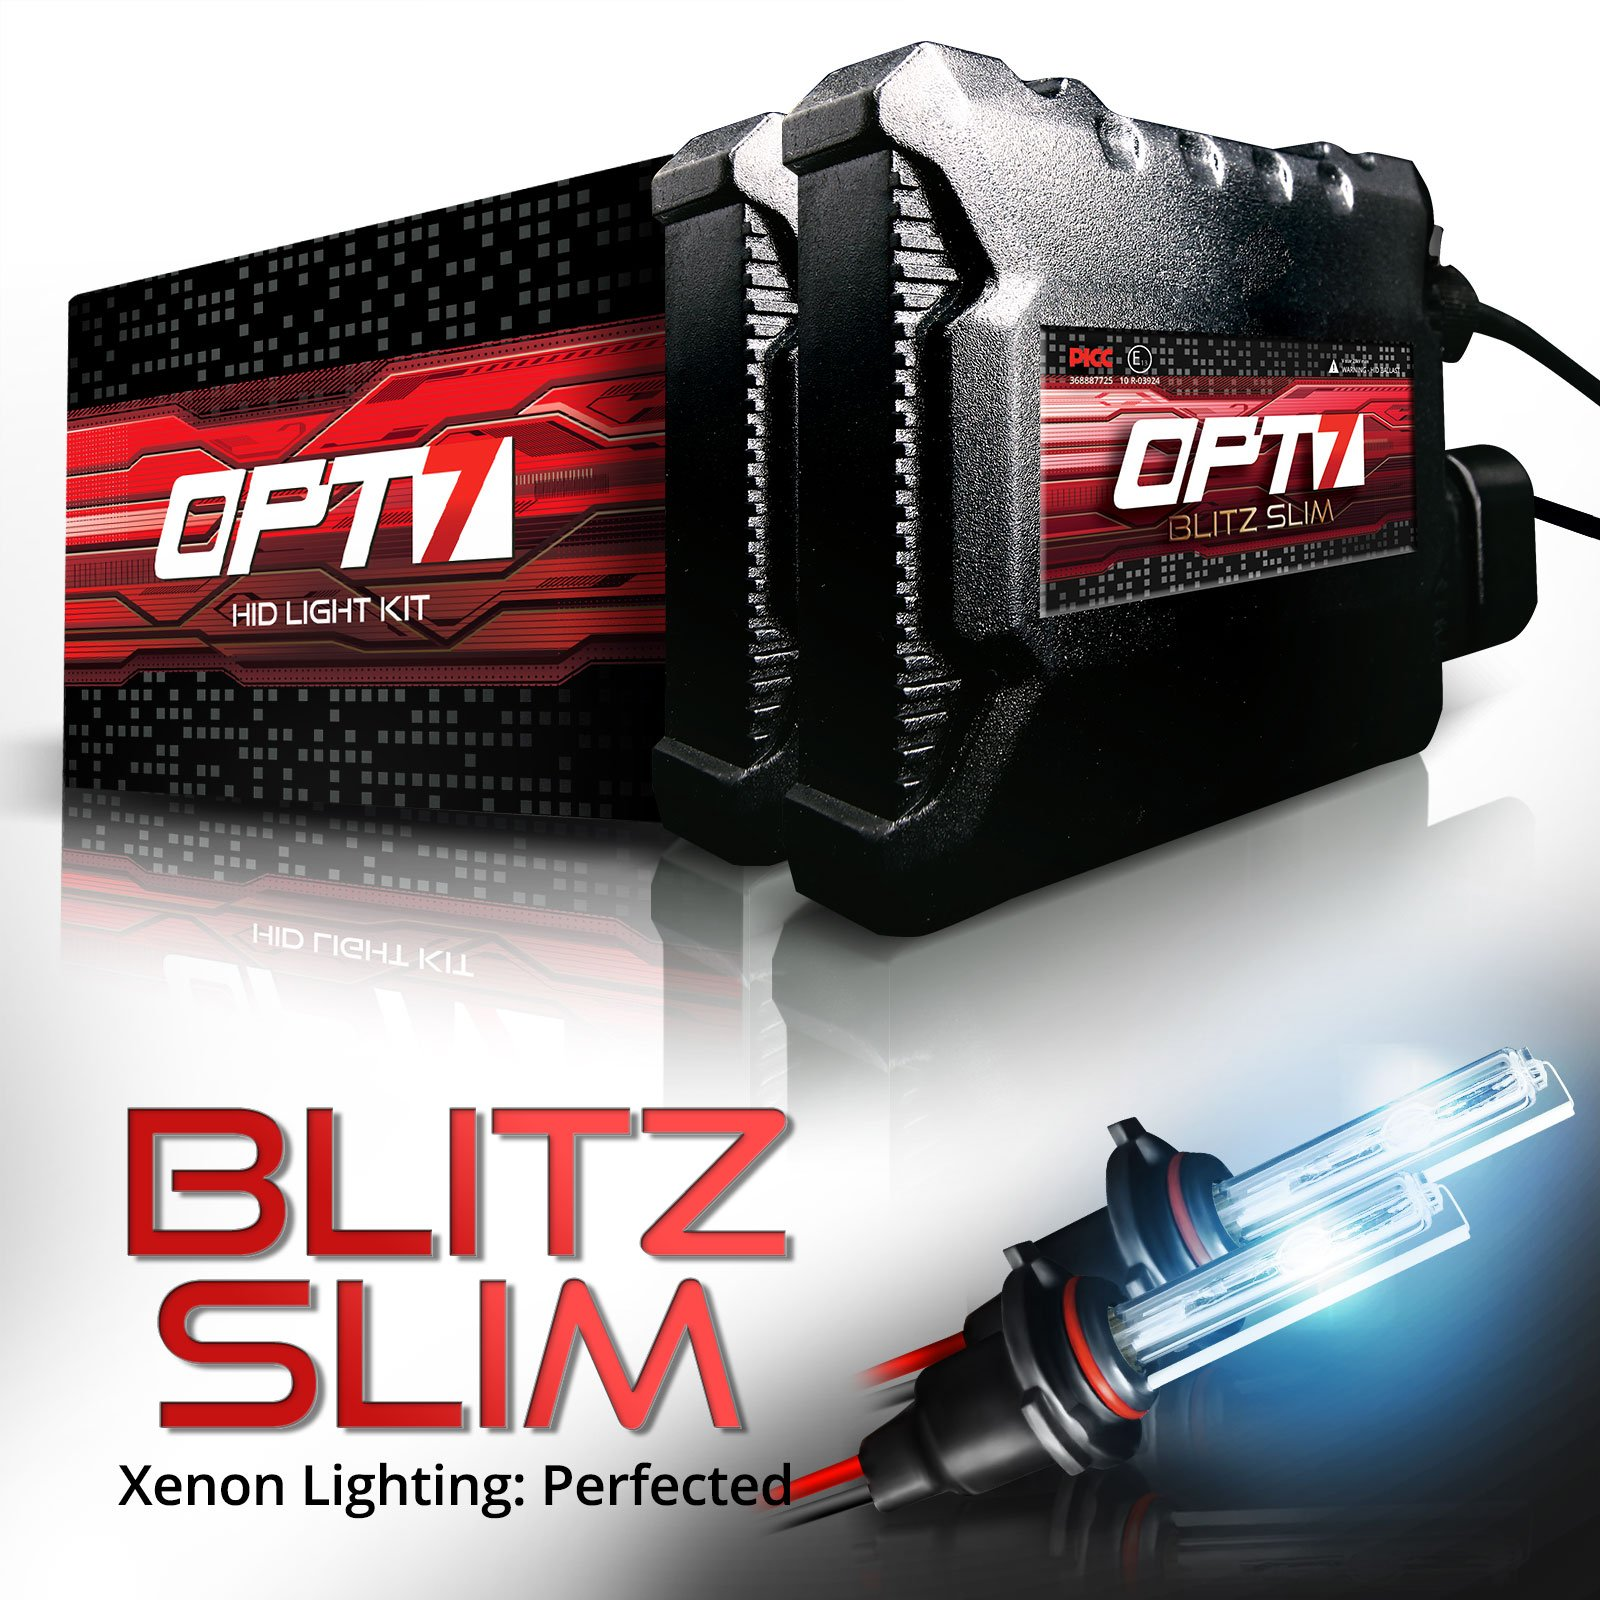 OPT7 Blitz Slim H7 HID Kit - 3.5X Brighter - 4X Longer Life - All Bulb Sizes and Colors - 2 Yr Warranty [8000K Ice Blue Xenon Light] by OPT7